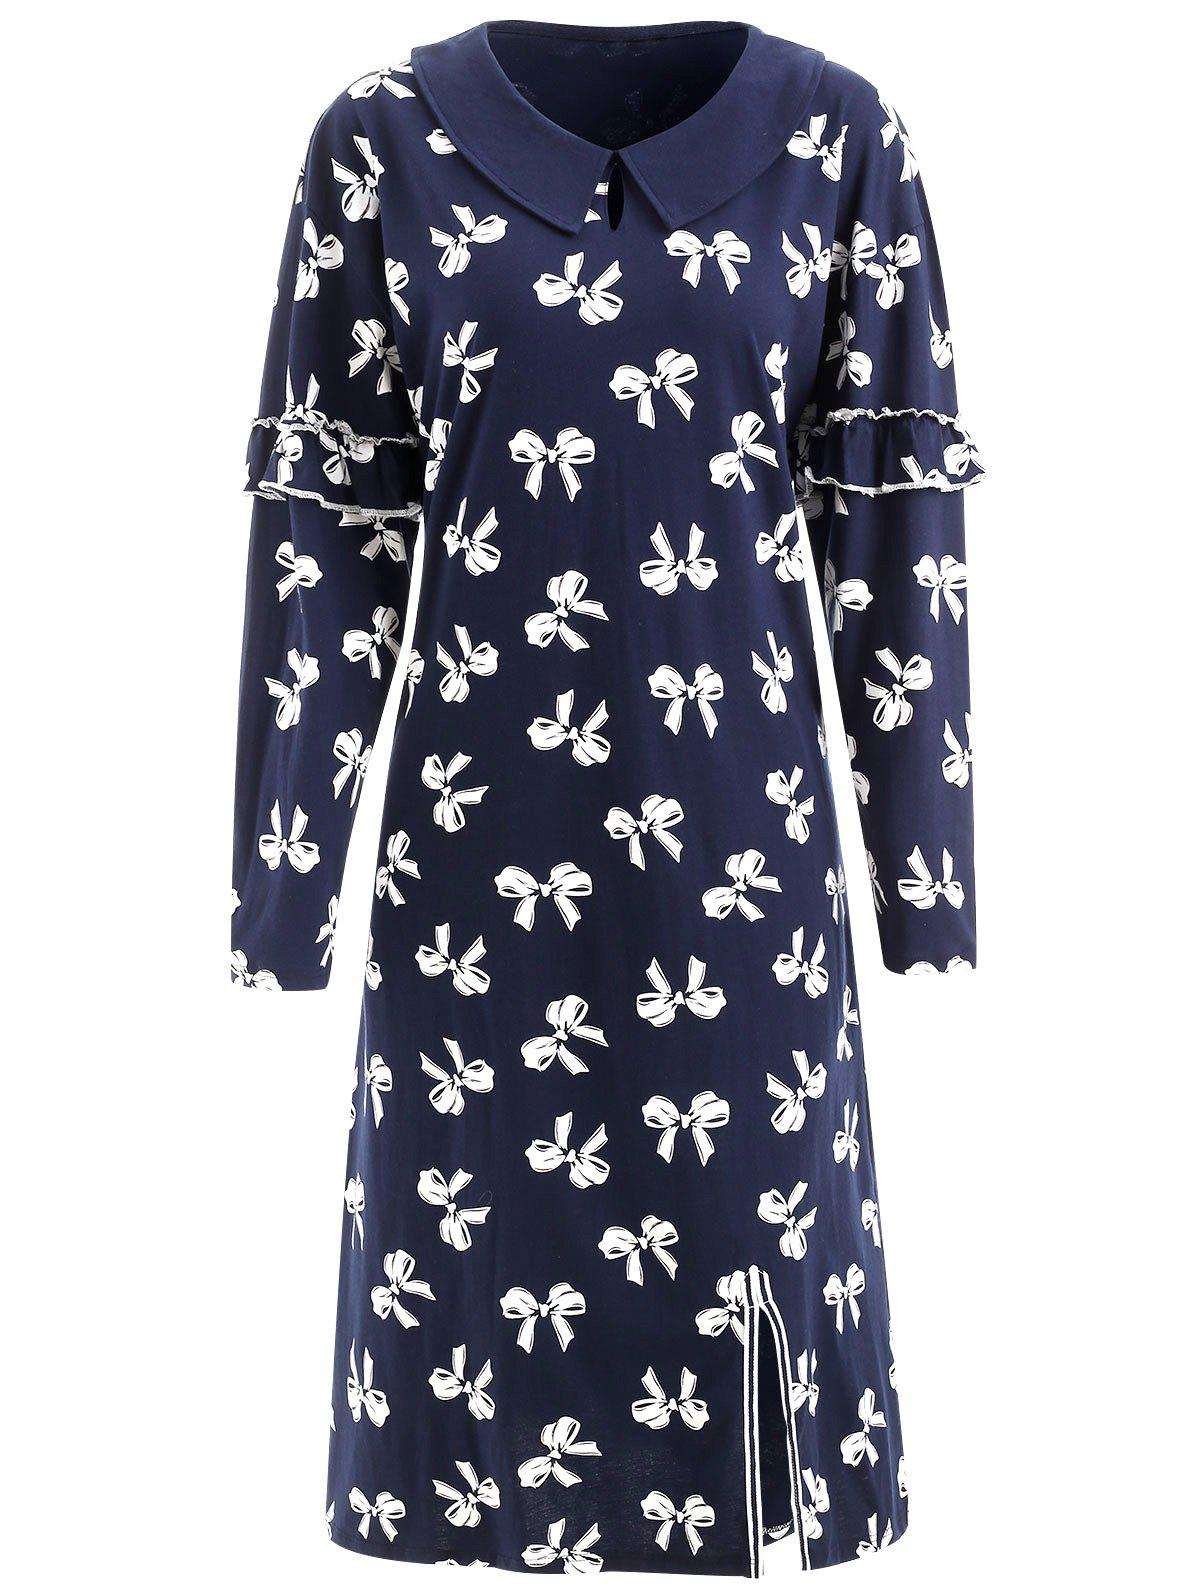 Unique Keyhole Bowknot Print Nightgown Dress